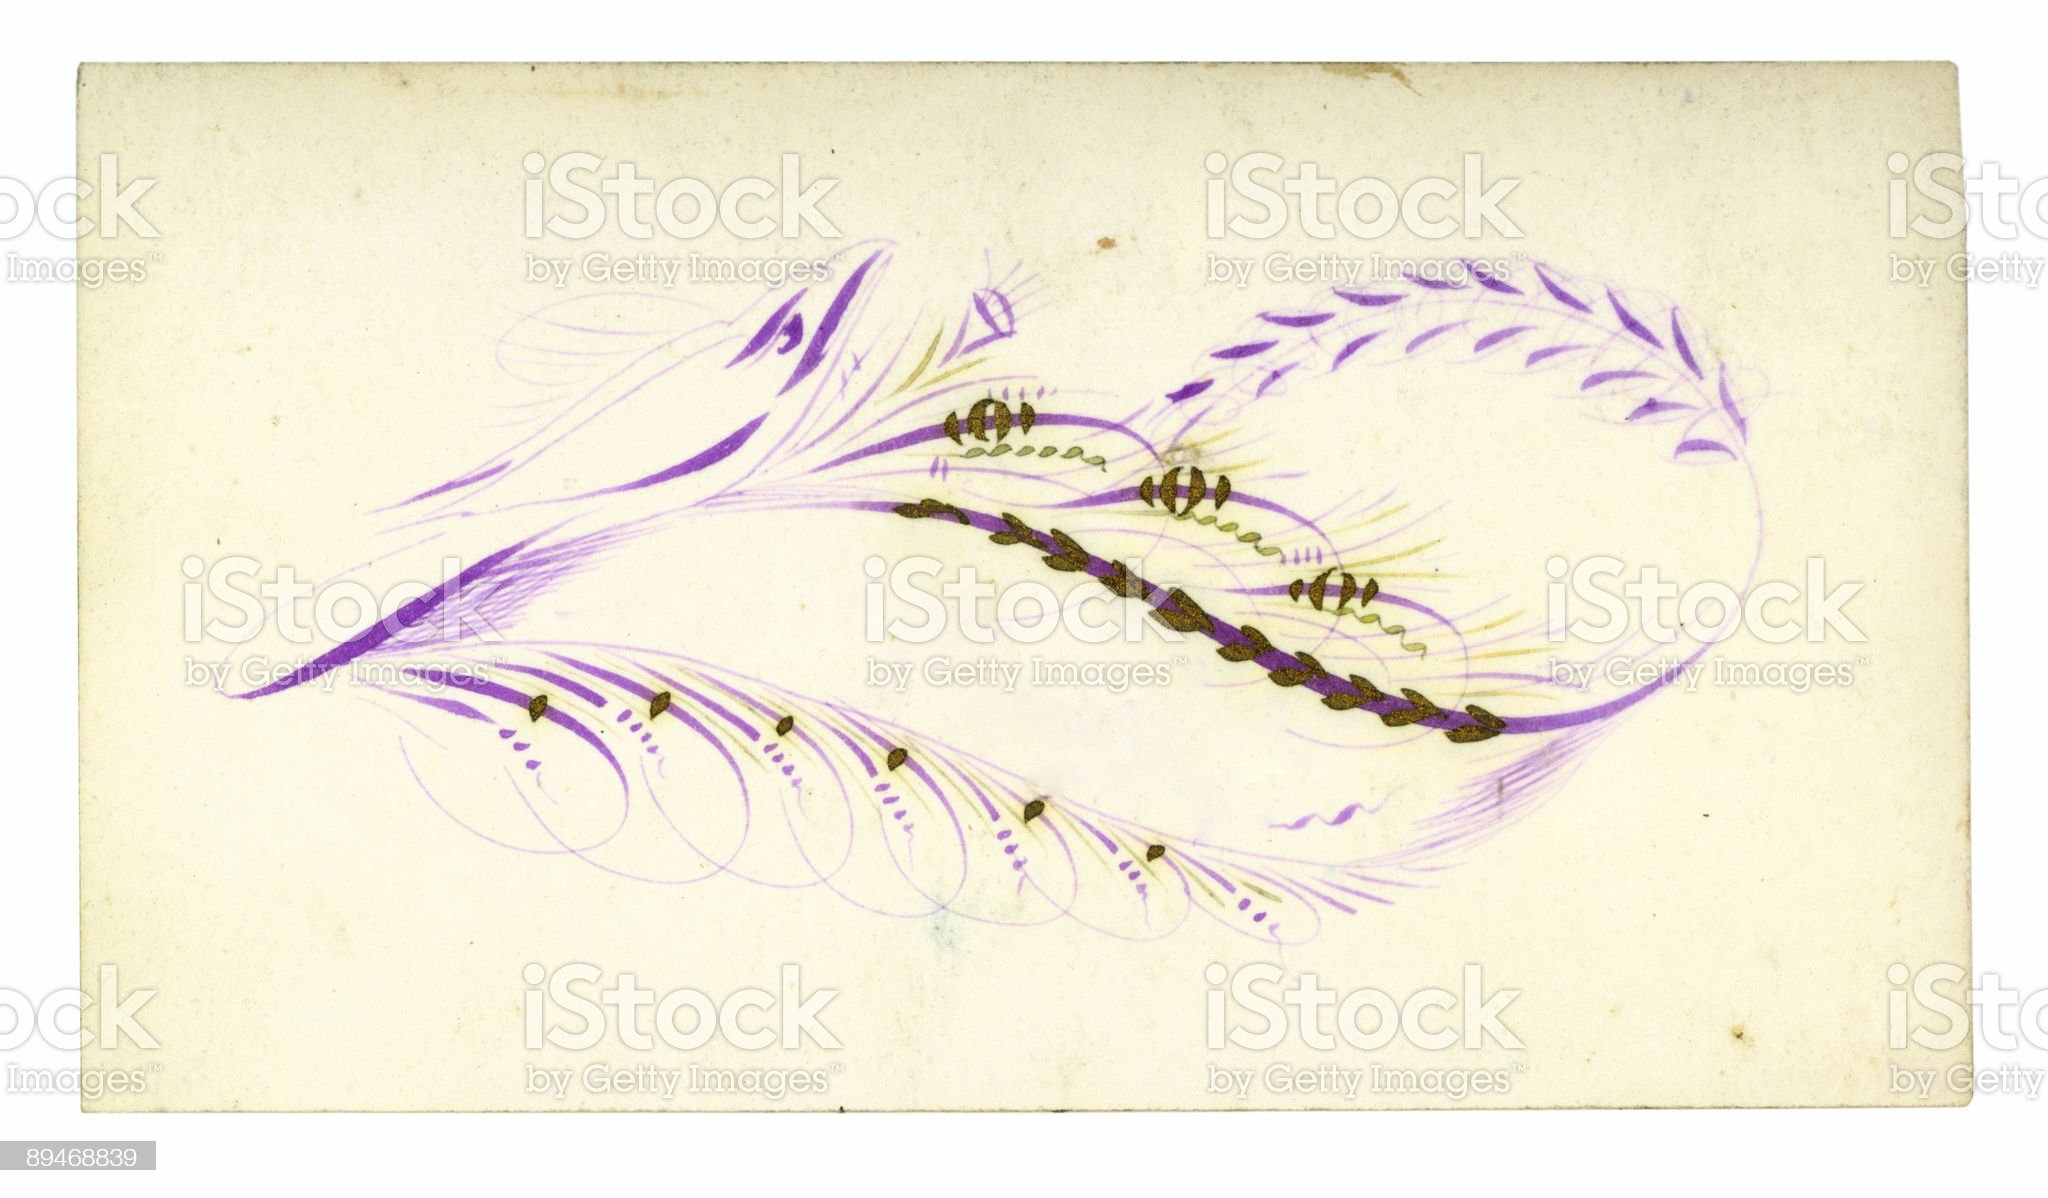 Antique Calling Card 14 royalty-free stock photo